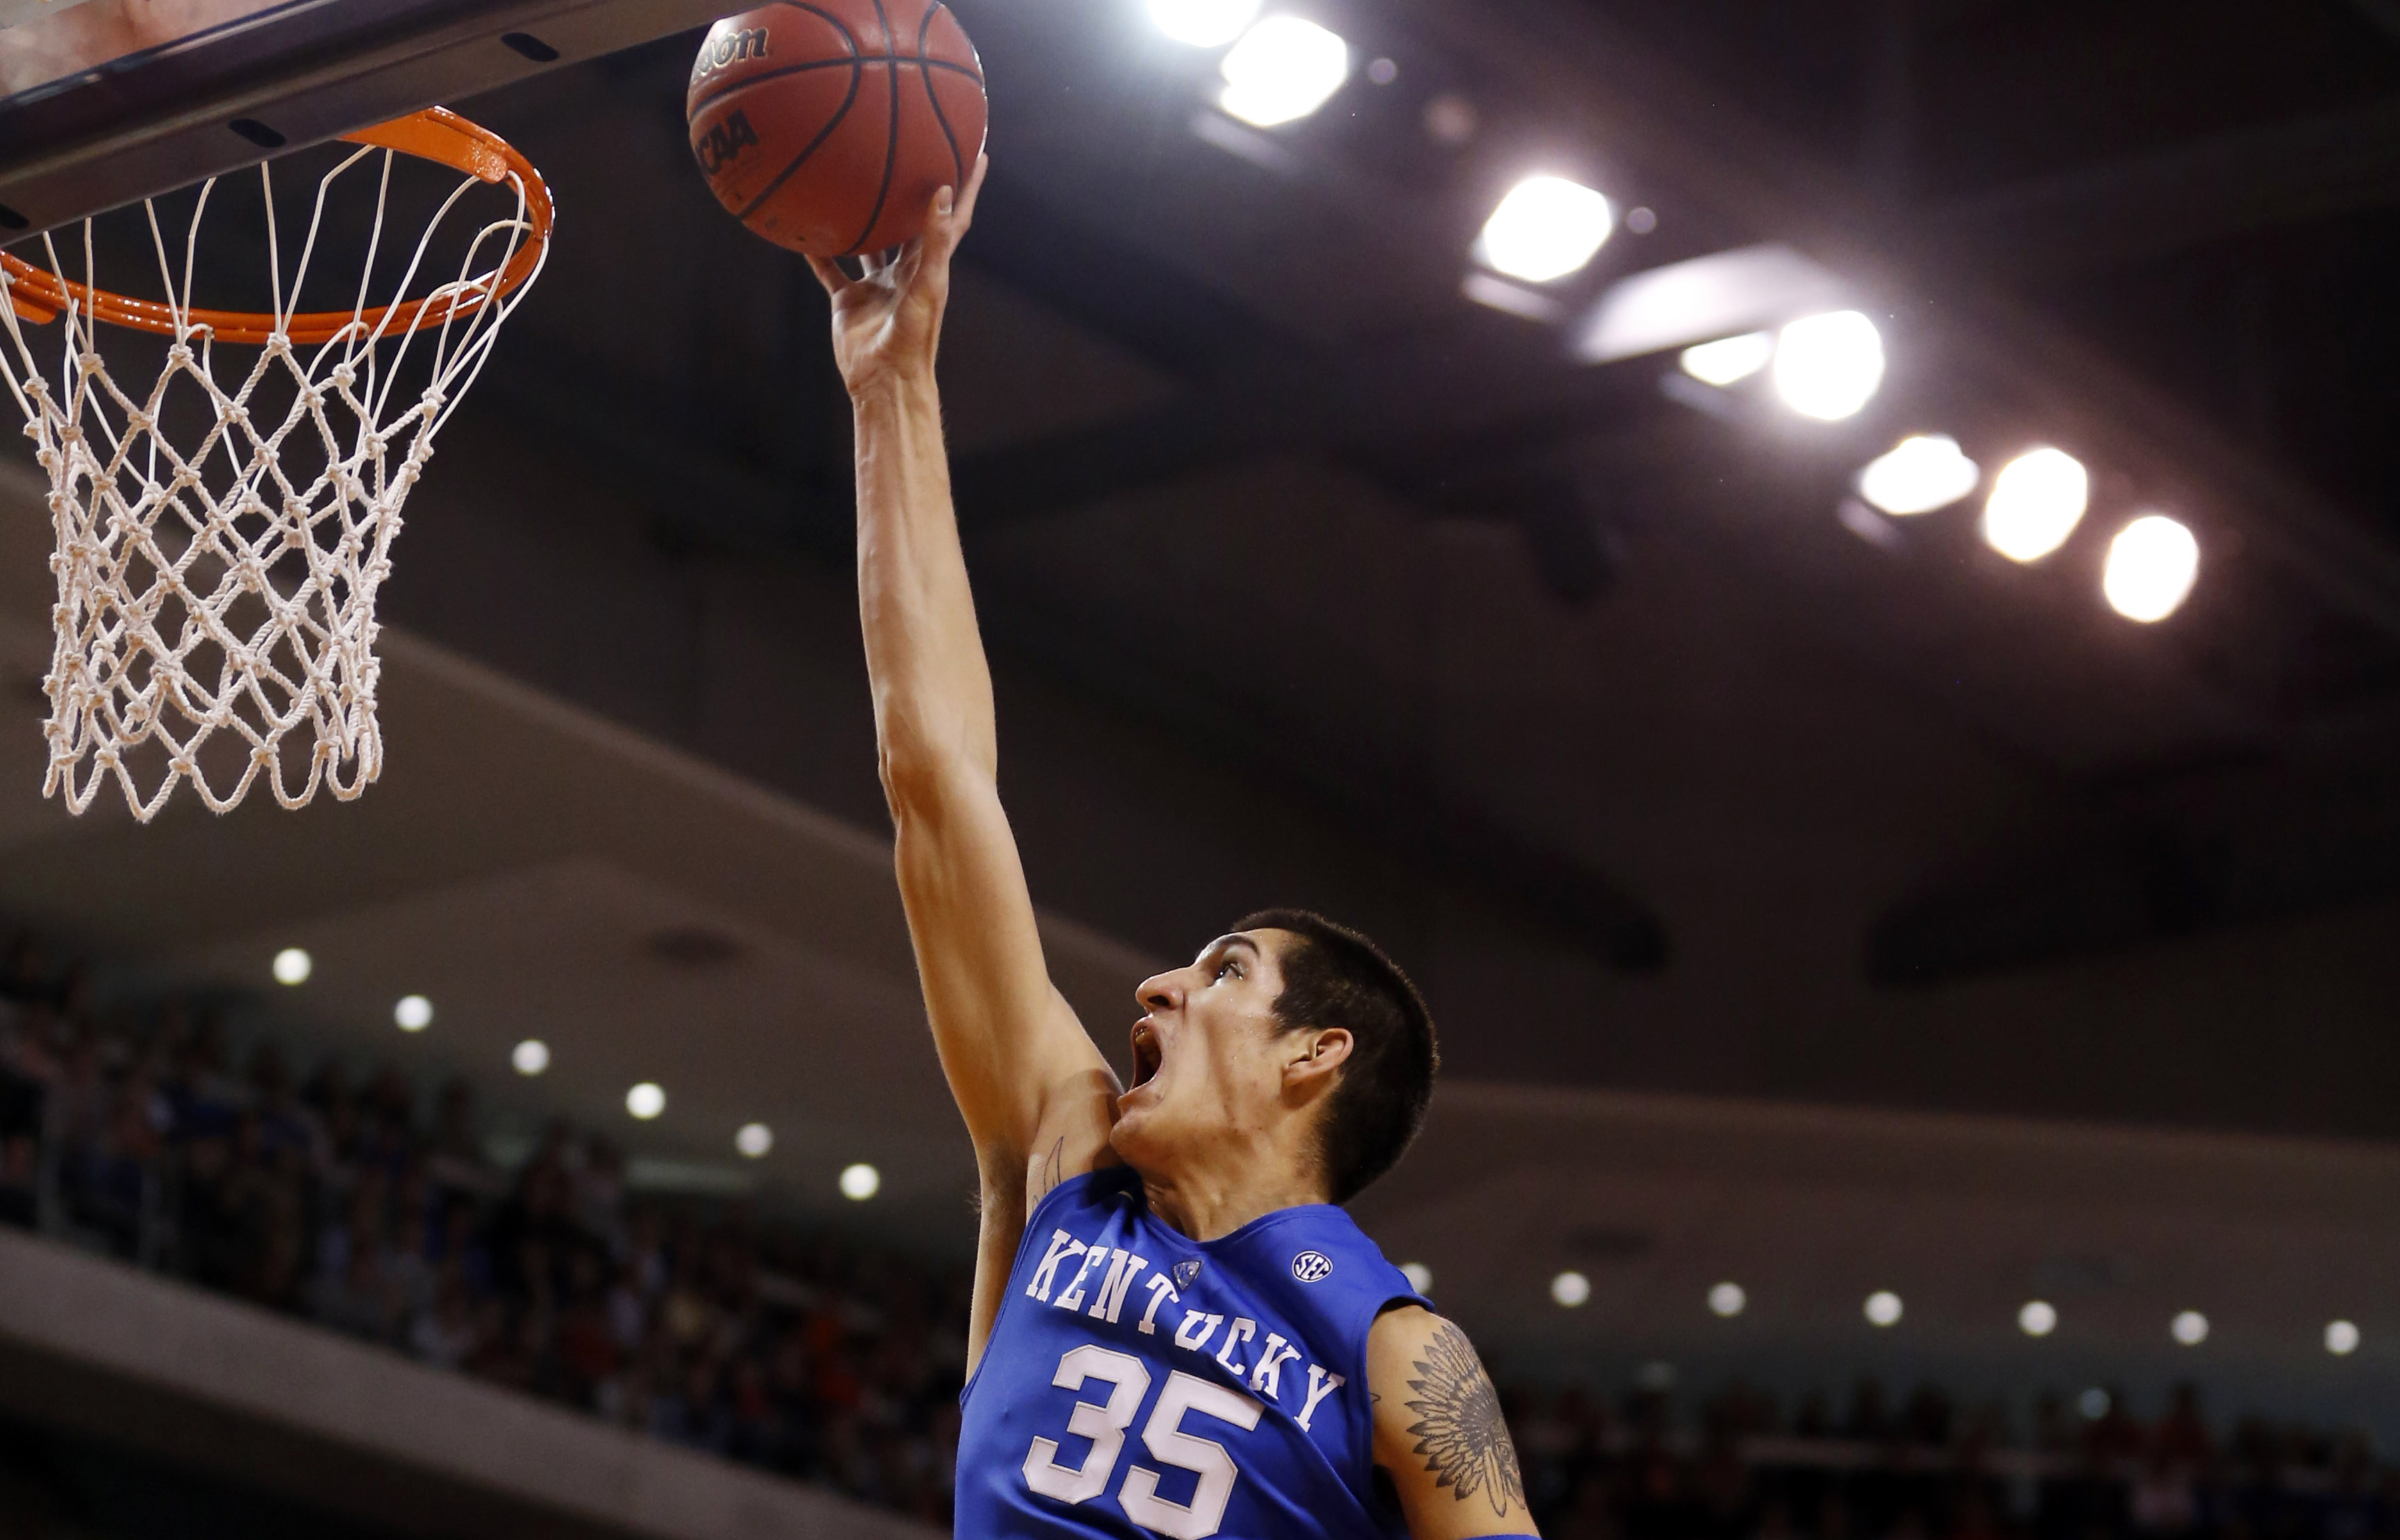 FILE - In this Jan. 16, 2016, file photo, Kentucky forward Derek Willis (35) shoots and scores during the first half of an NCAA college basketball game against Auburn in Auburn, Ala. Kentucky is to play Kansas on Saturday, Jan. 30, in the Big 12/SEC Chall